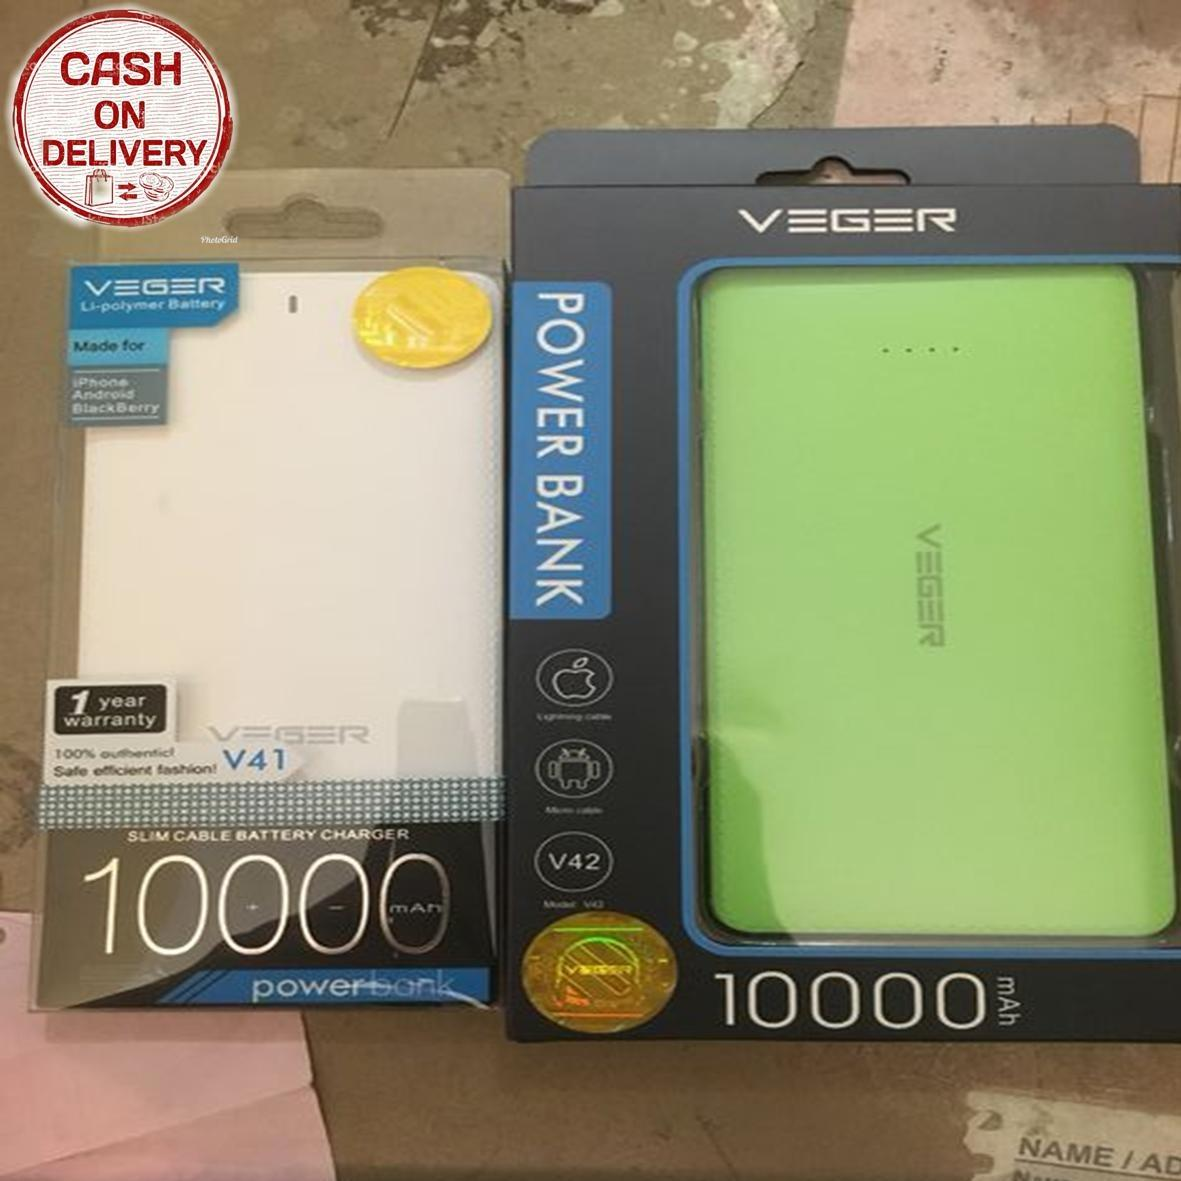 Kado Unik-- 1 Paket Powerbank Veger 10000mah V41 Dan V42 / Powerbank Veger/ Powerbank Portable / Charger Handphone / Powerbank Veger Original / Power Bank Veger Berkualitas / Powerbank Veger Slim